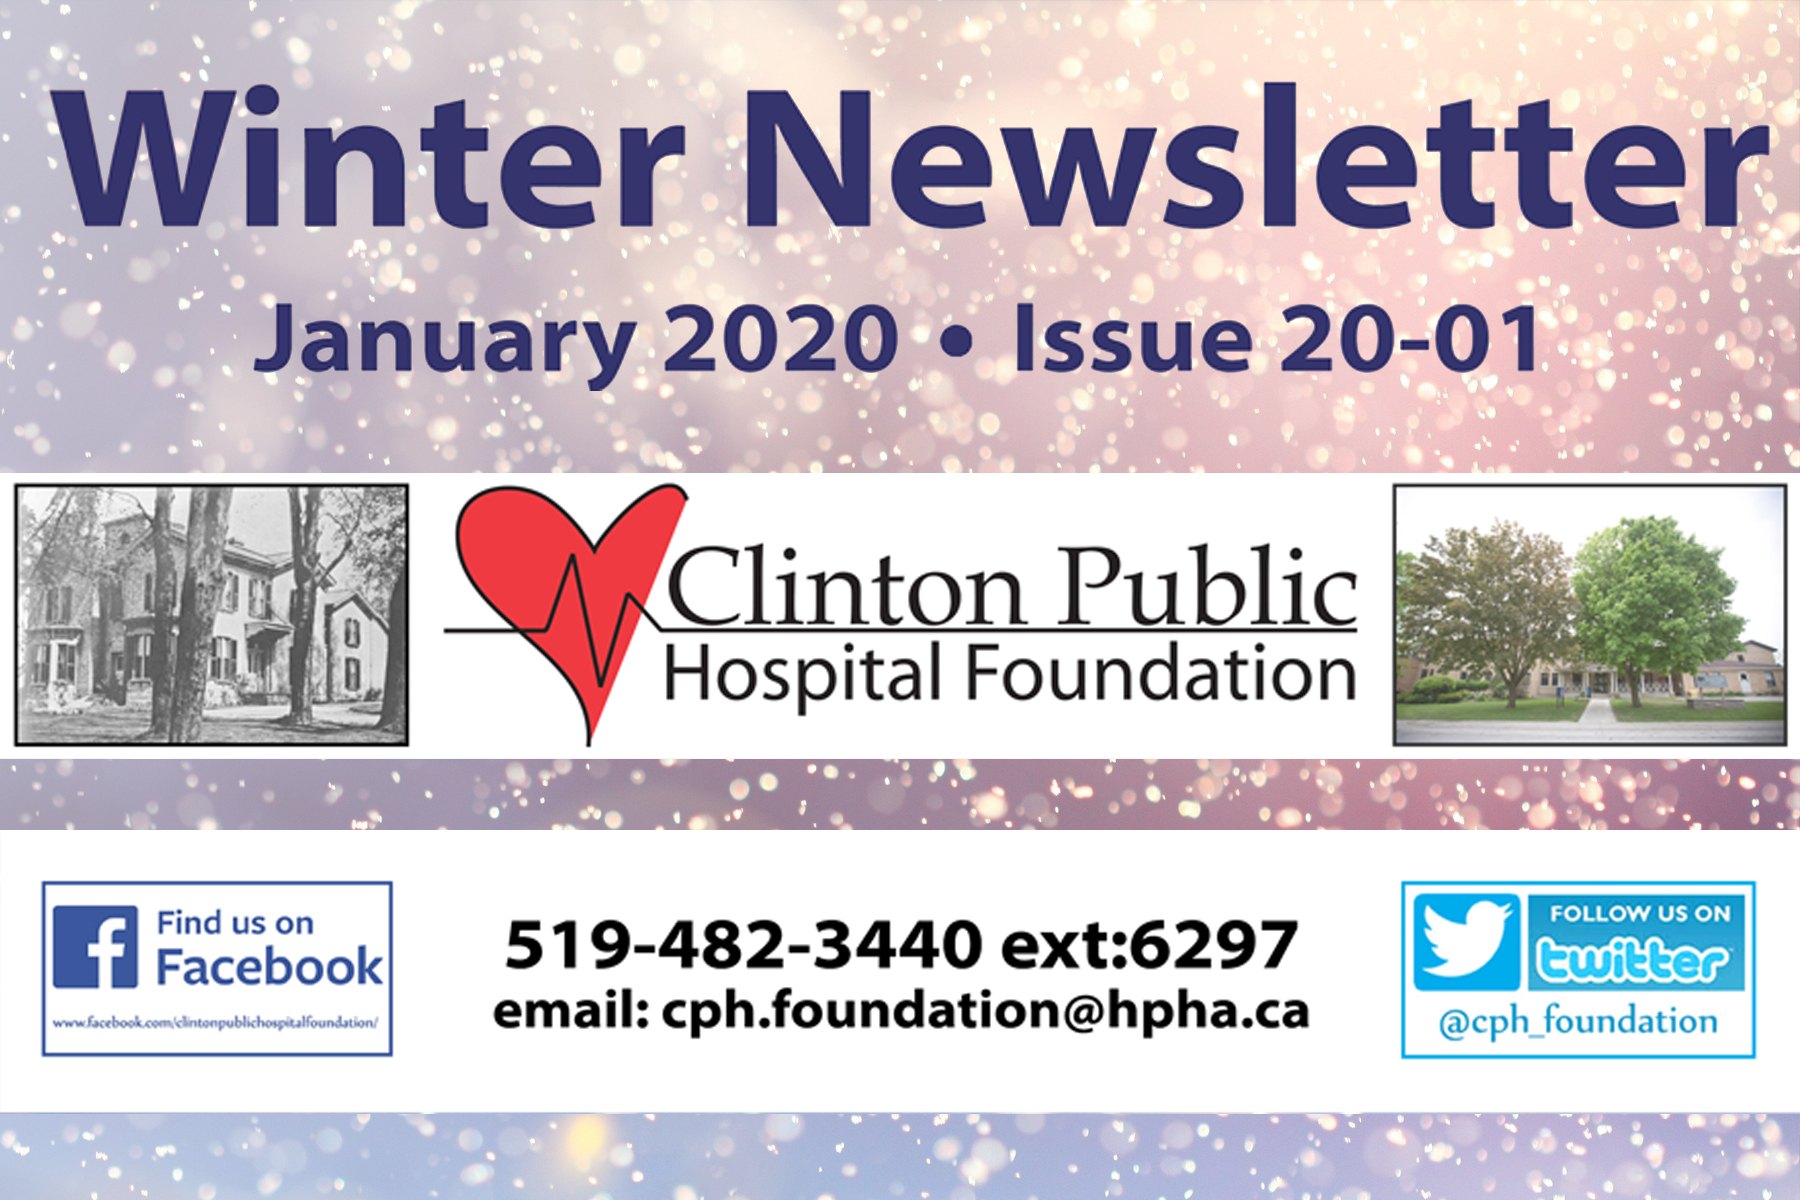 CPHF Winter Newsletter (20-01)